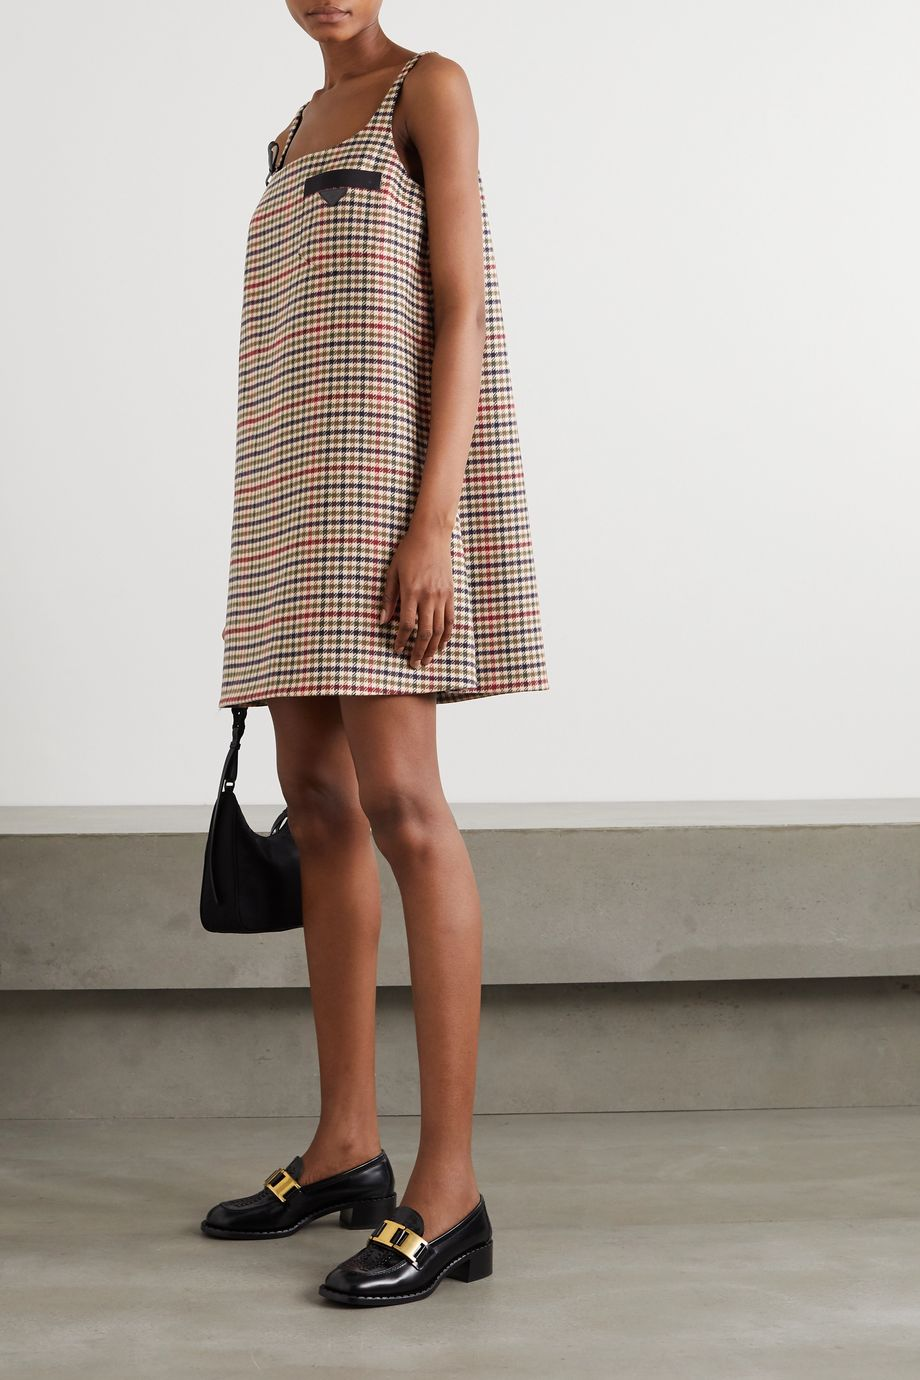 Prada Leather-trimmed houndstooth wool and cashmere-blend mini dress